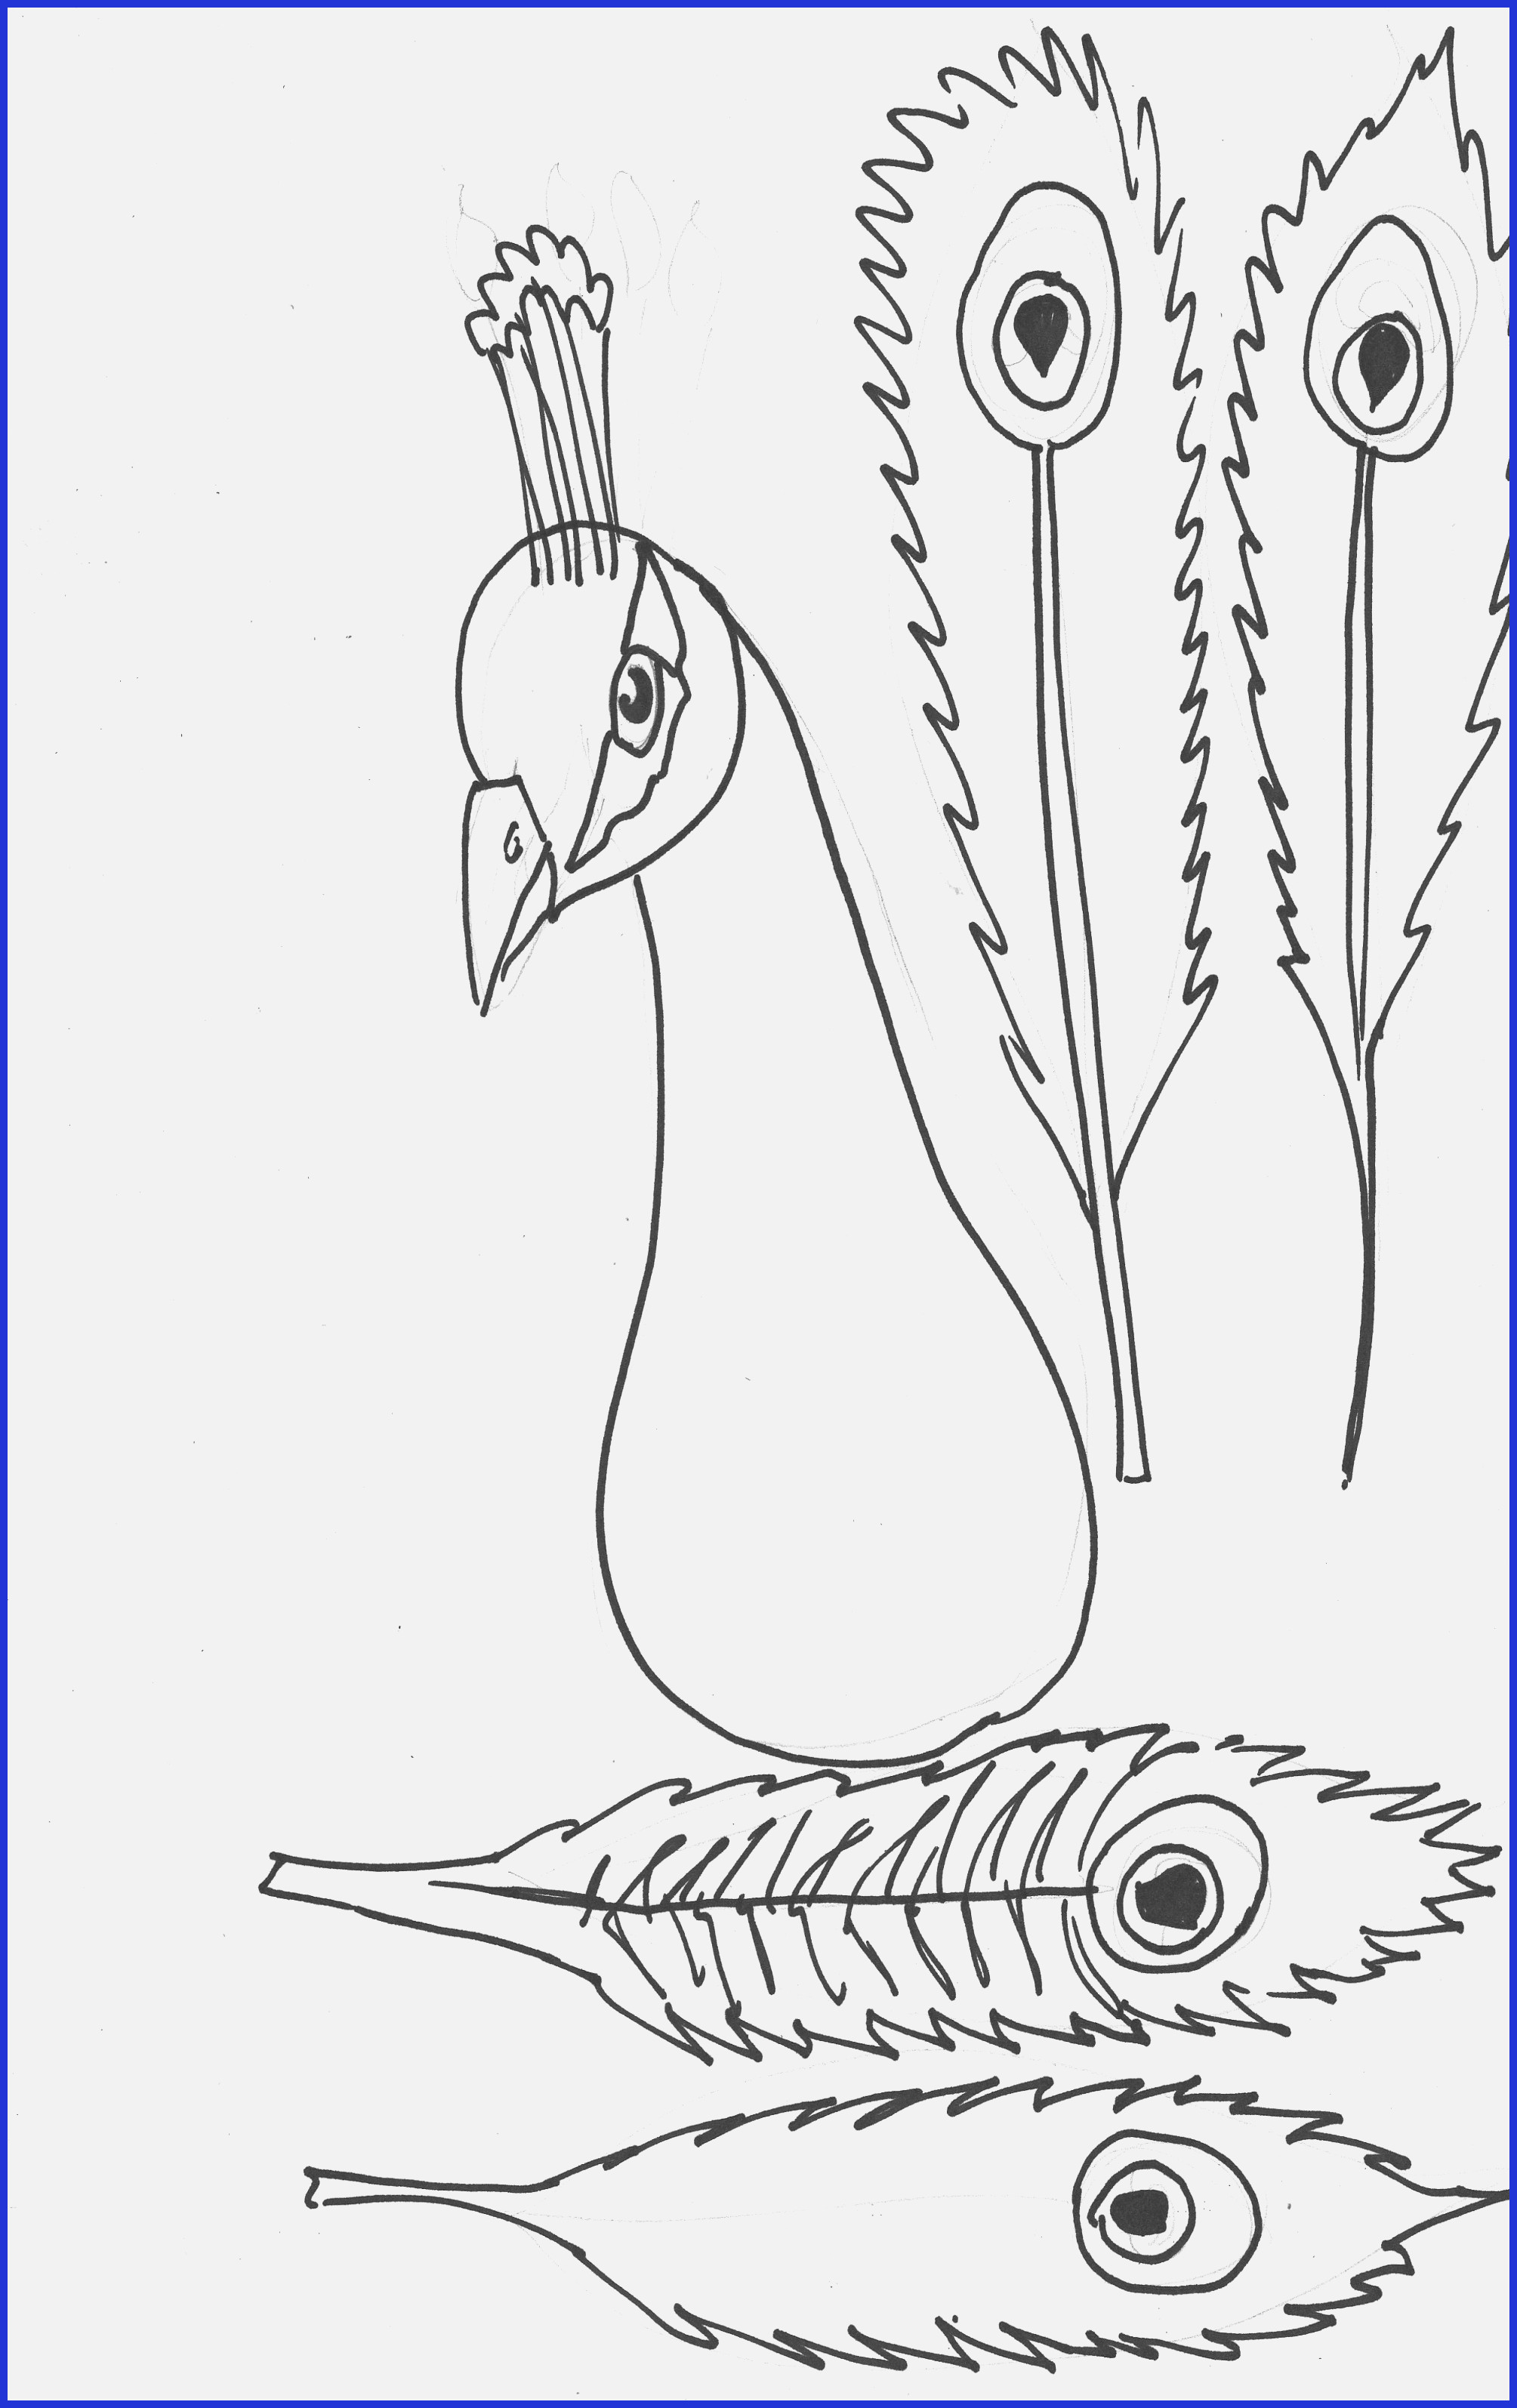 Peacock Color Page Shark Pictures For Kids To Color Peacock Coloring Pages For Kids